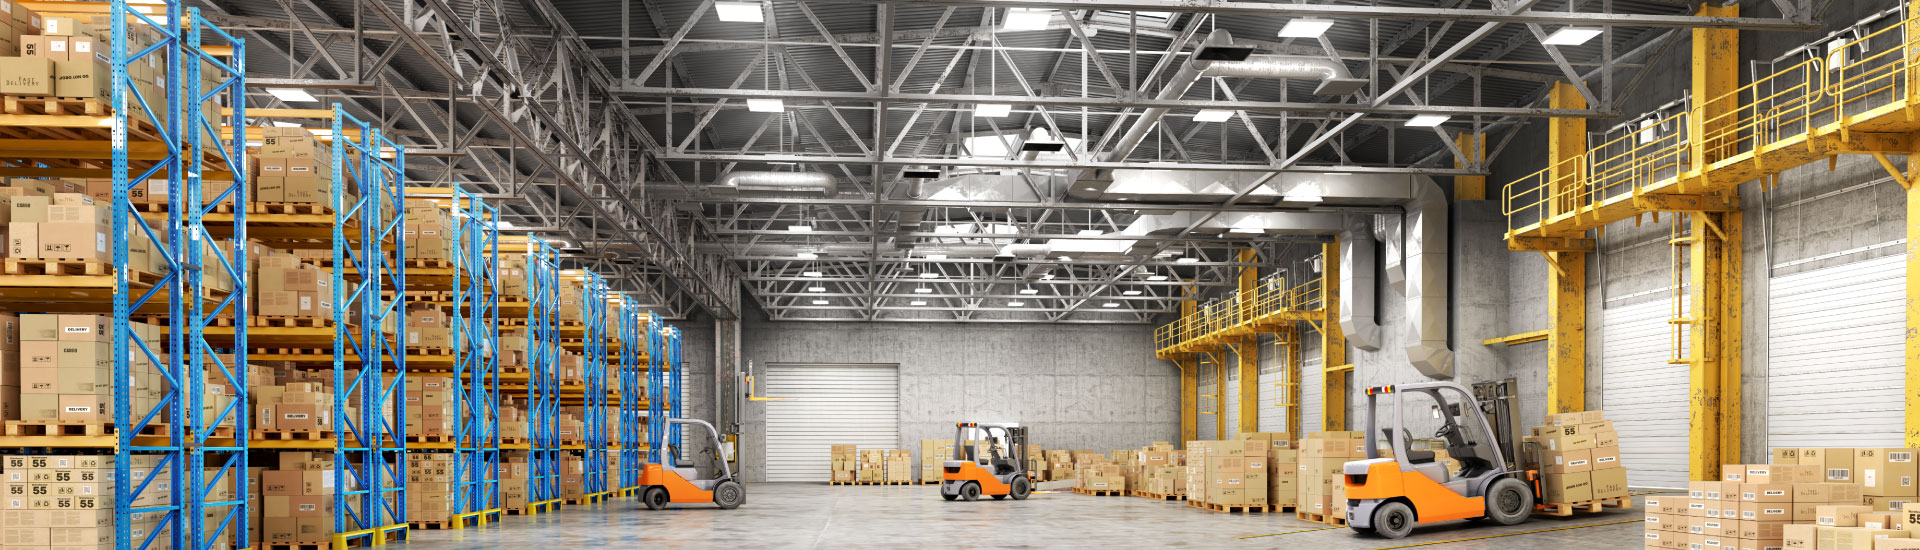 Warehouse facility with LED industrial high bay lighting